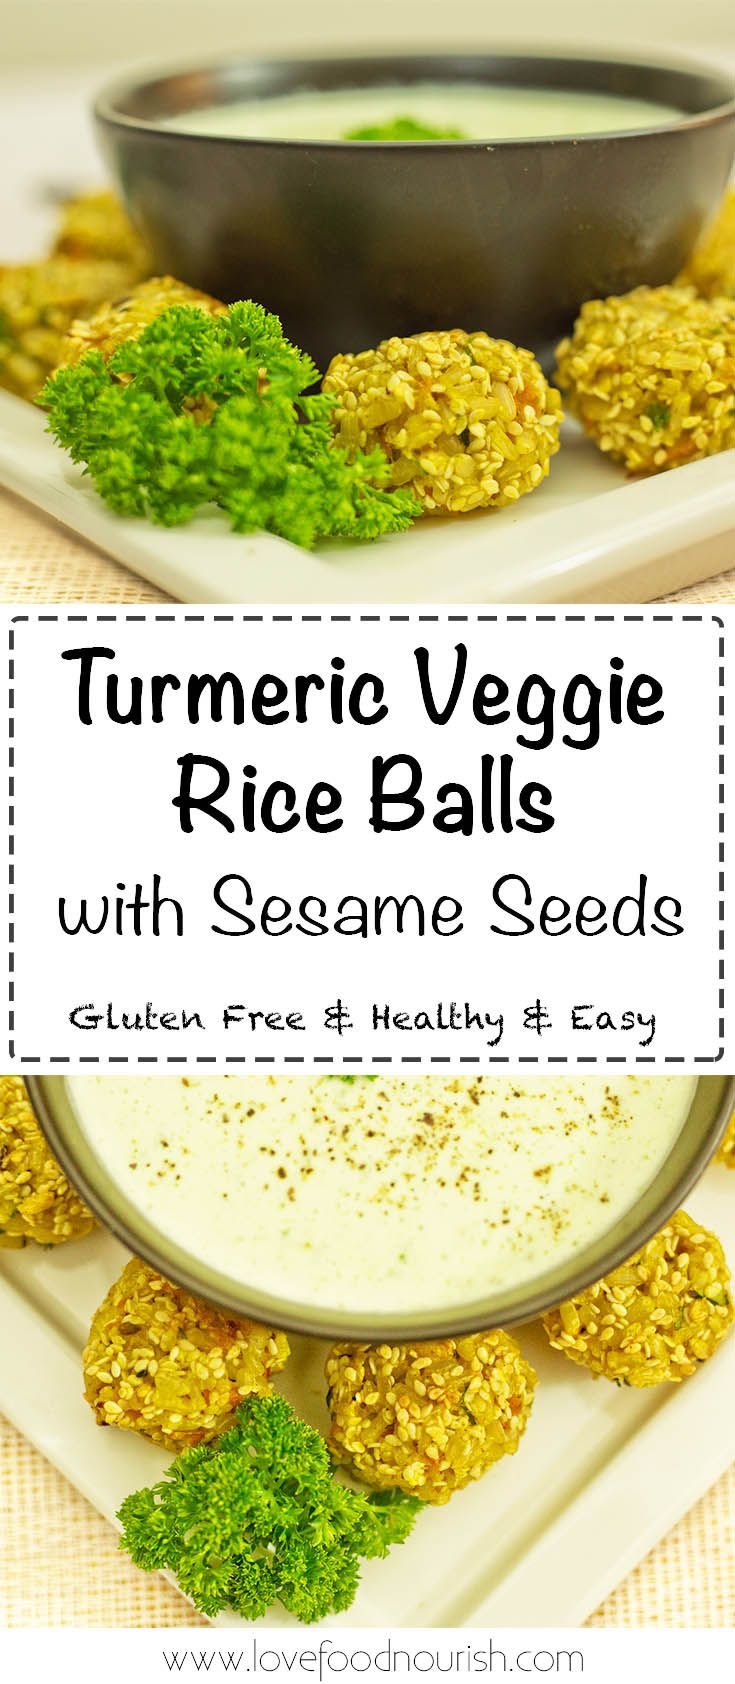 Turmeric Veggie Rice Balls with Sesame Seeds - A tasty gluten free appetizer or healthy snack for kids, can easily go into lunchboxes. Gluten Free & Dairy Free.